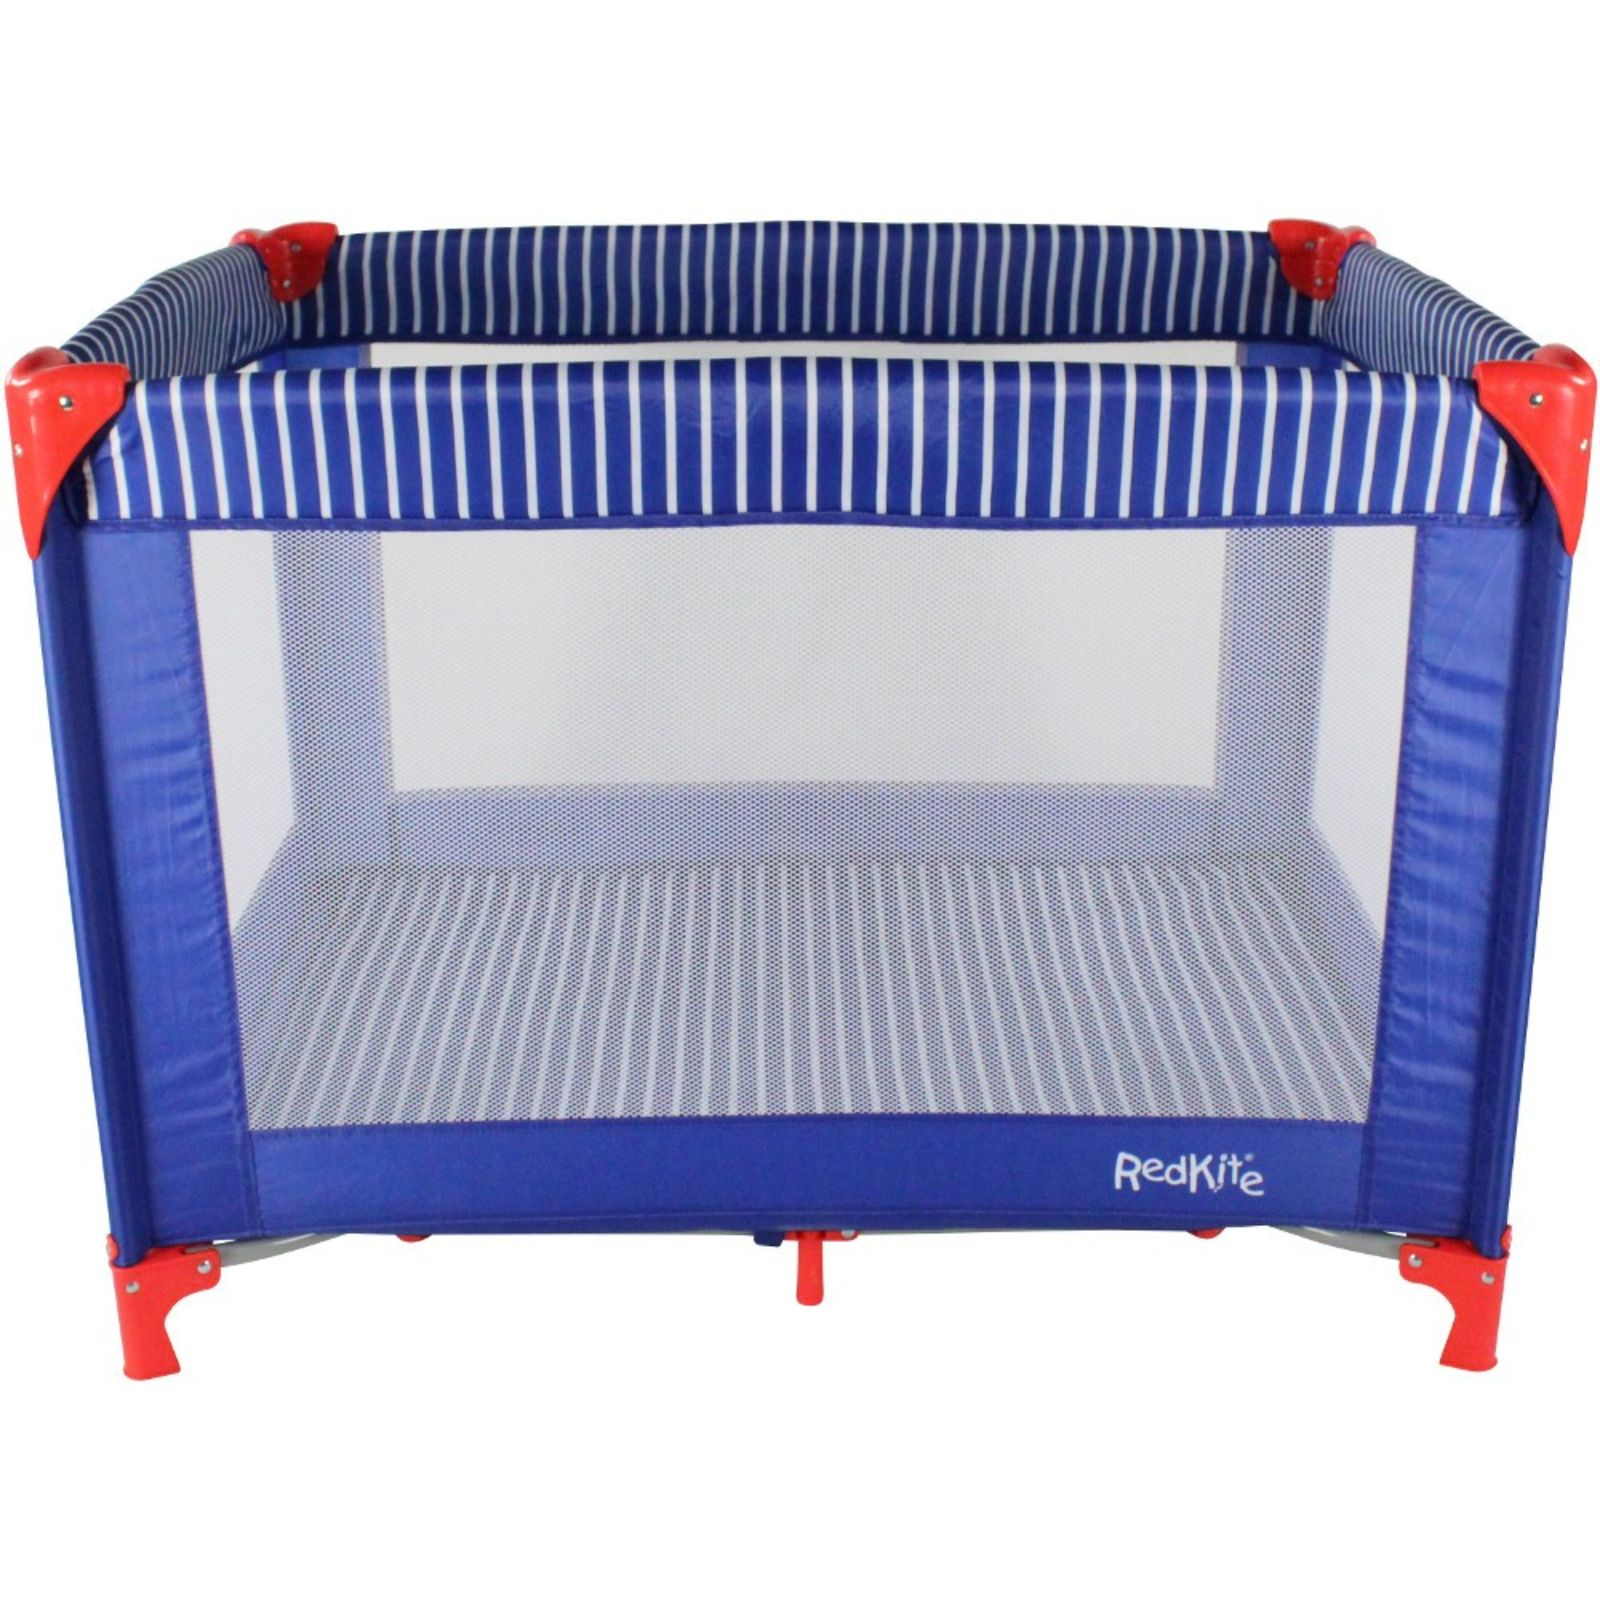 red kite sleeptight travel cot ships ahoy buy at. Black Bedroom Furniture Sets. Home Design Ideas